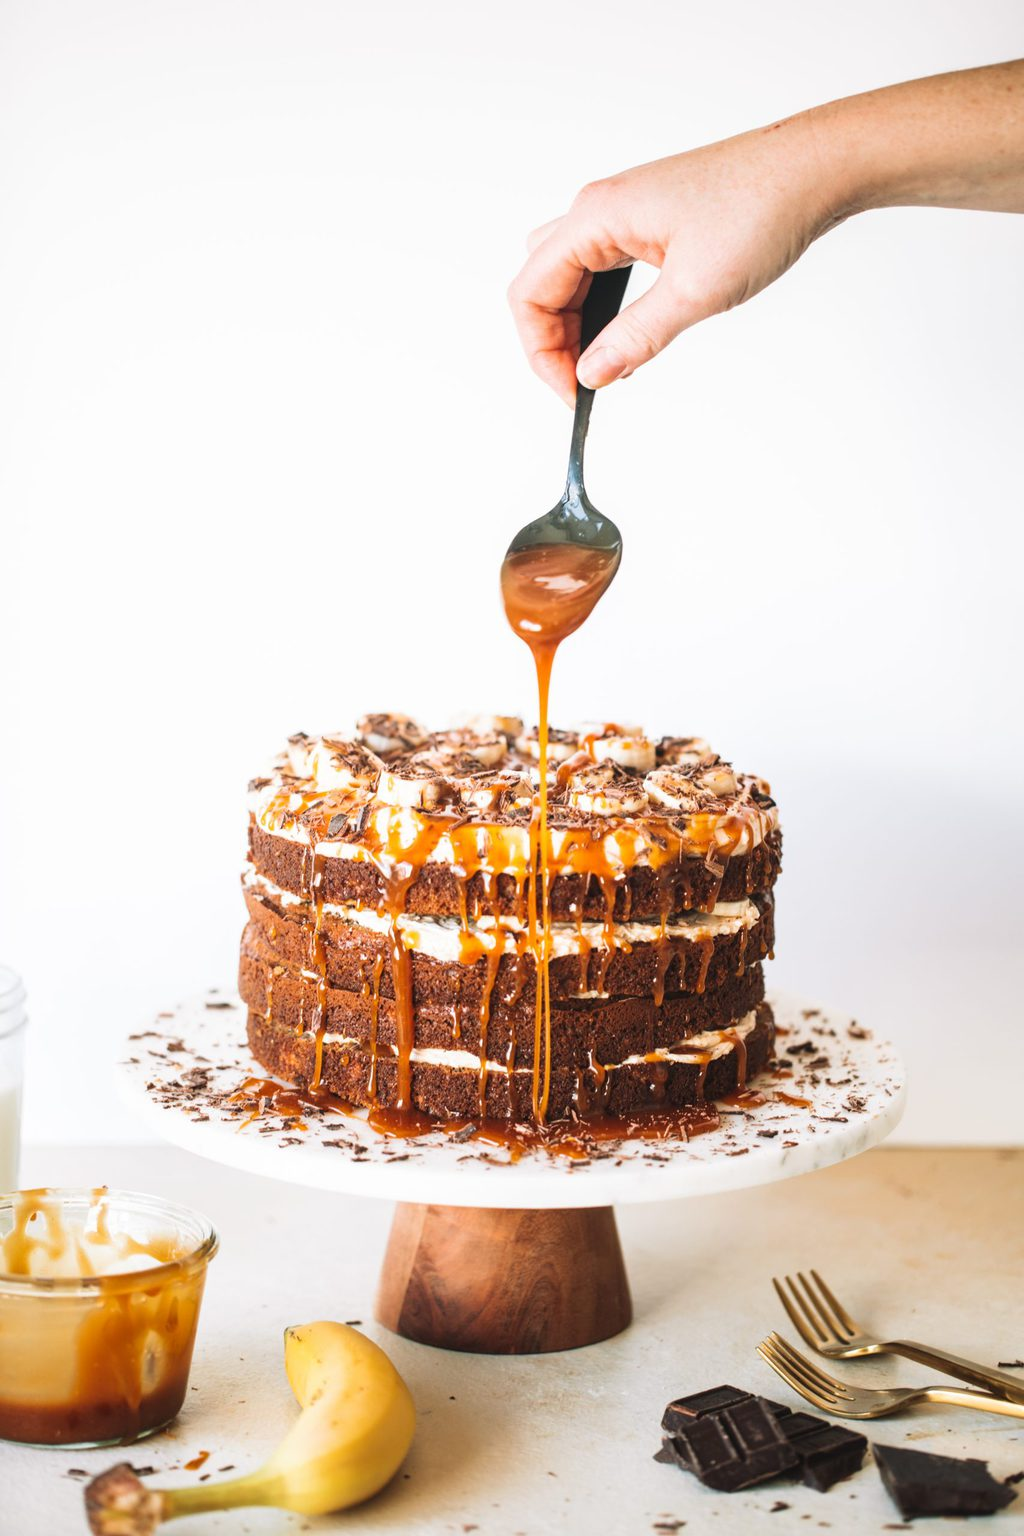 Woman holding spoon dripping caramel sauce onto banoffee cake.